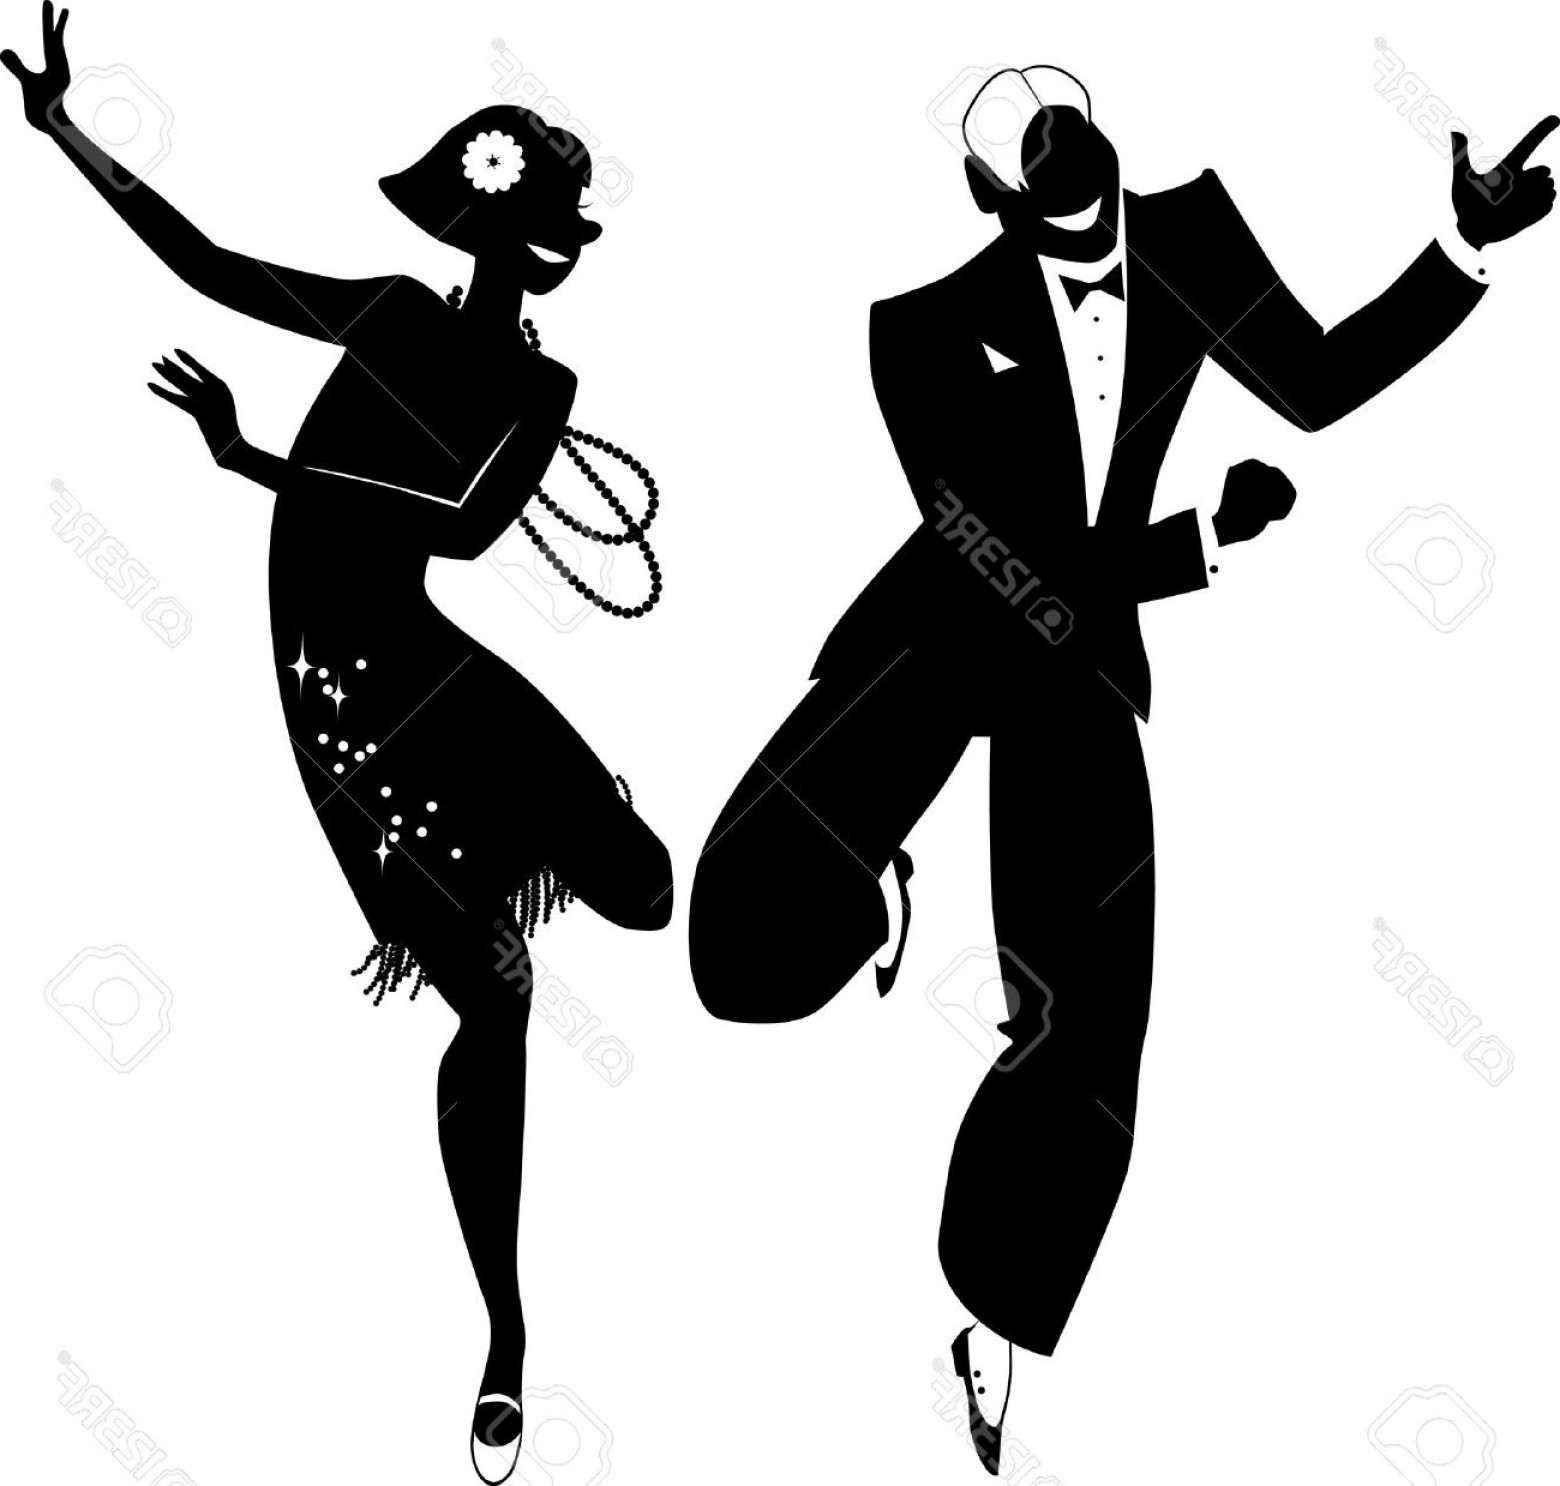 Vector Swing Dancers: Photostock Vector Black Vector Silhouette Of A Couple Dressed In S Fashion Dancing The Charleston No White Objects